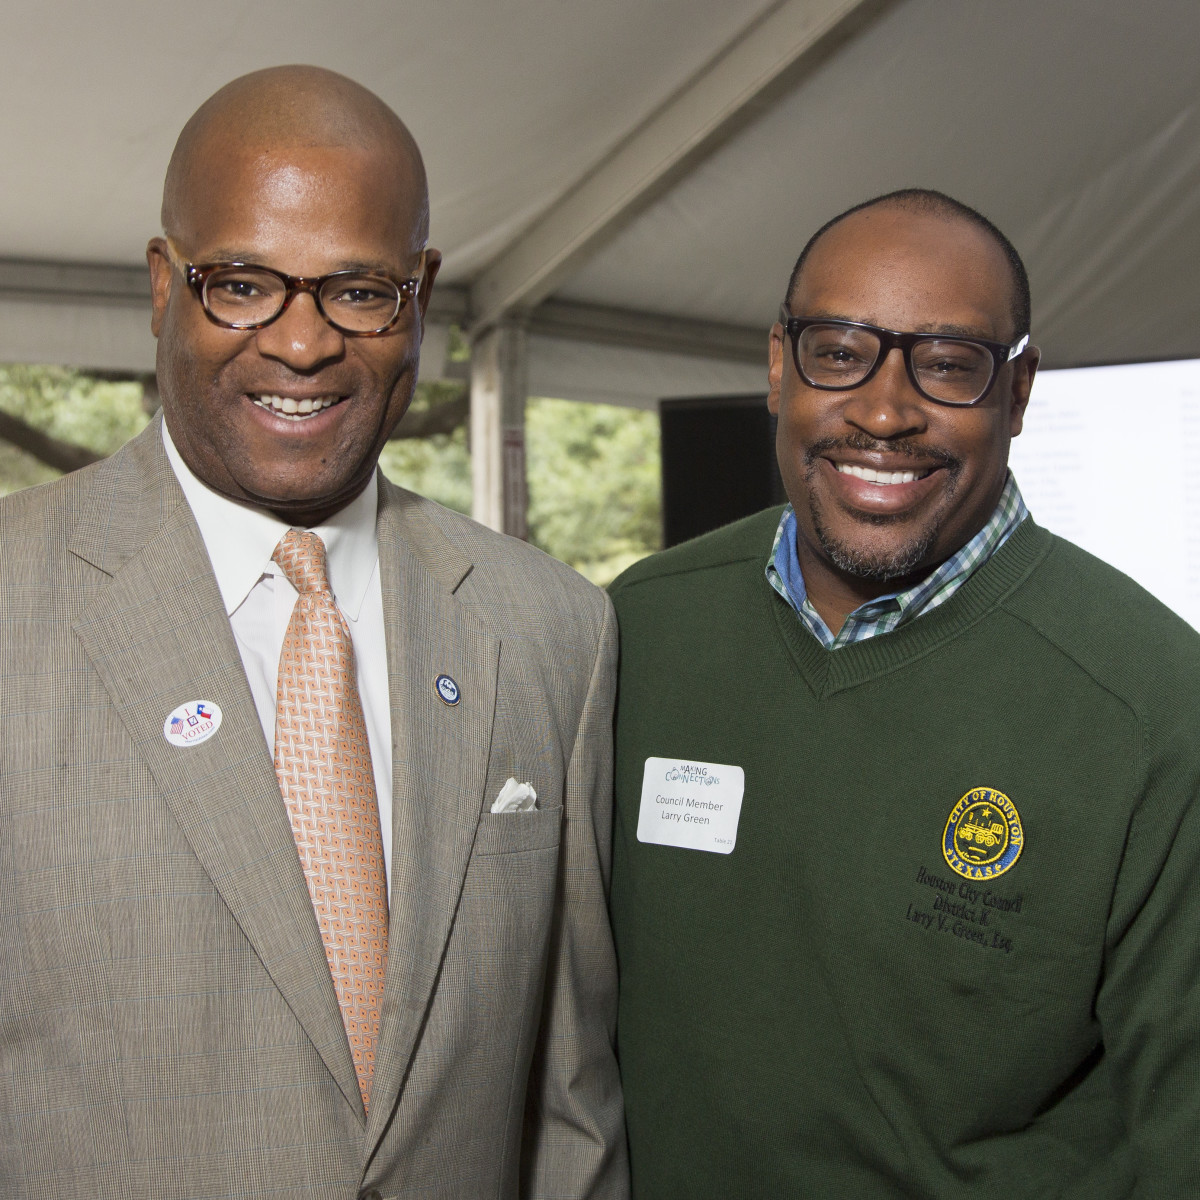 Houston Parks Board Luncheon Council Member Dwight Boykins; Council Member Larry Green